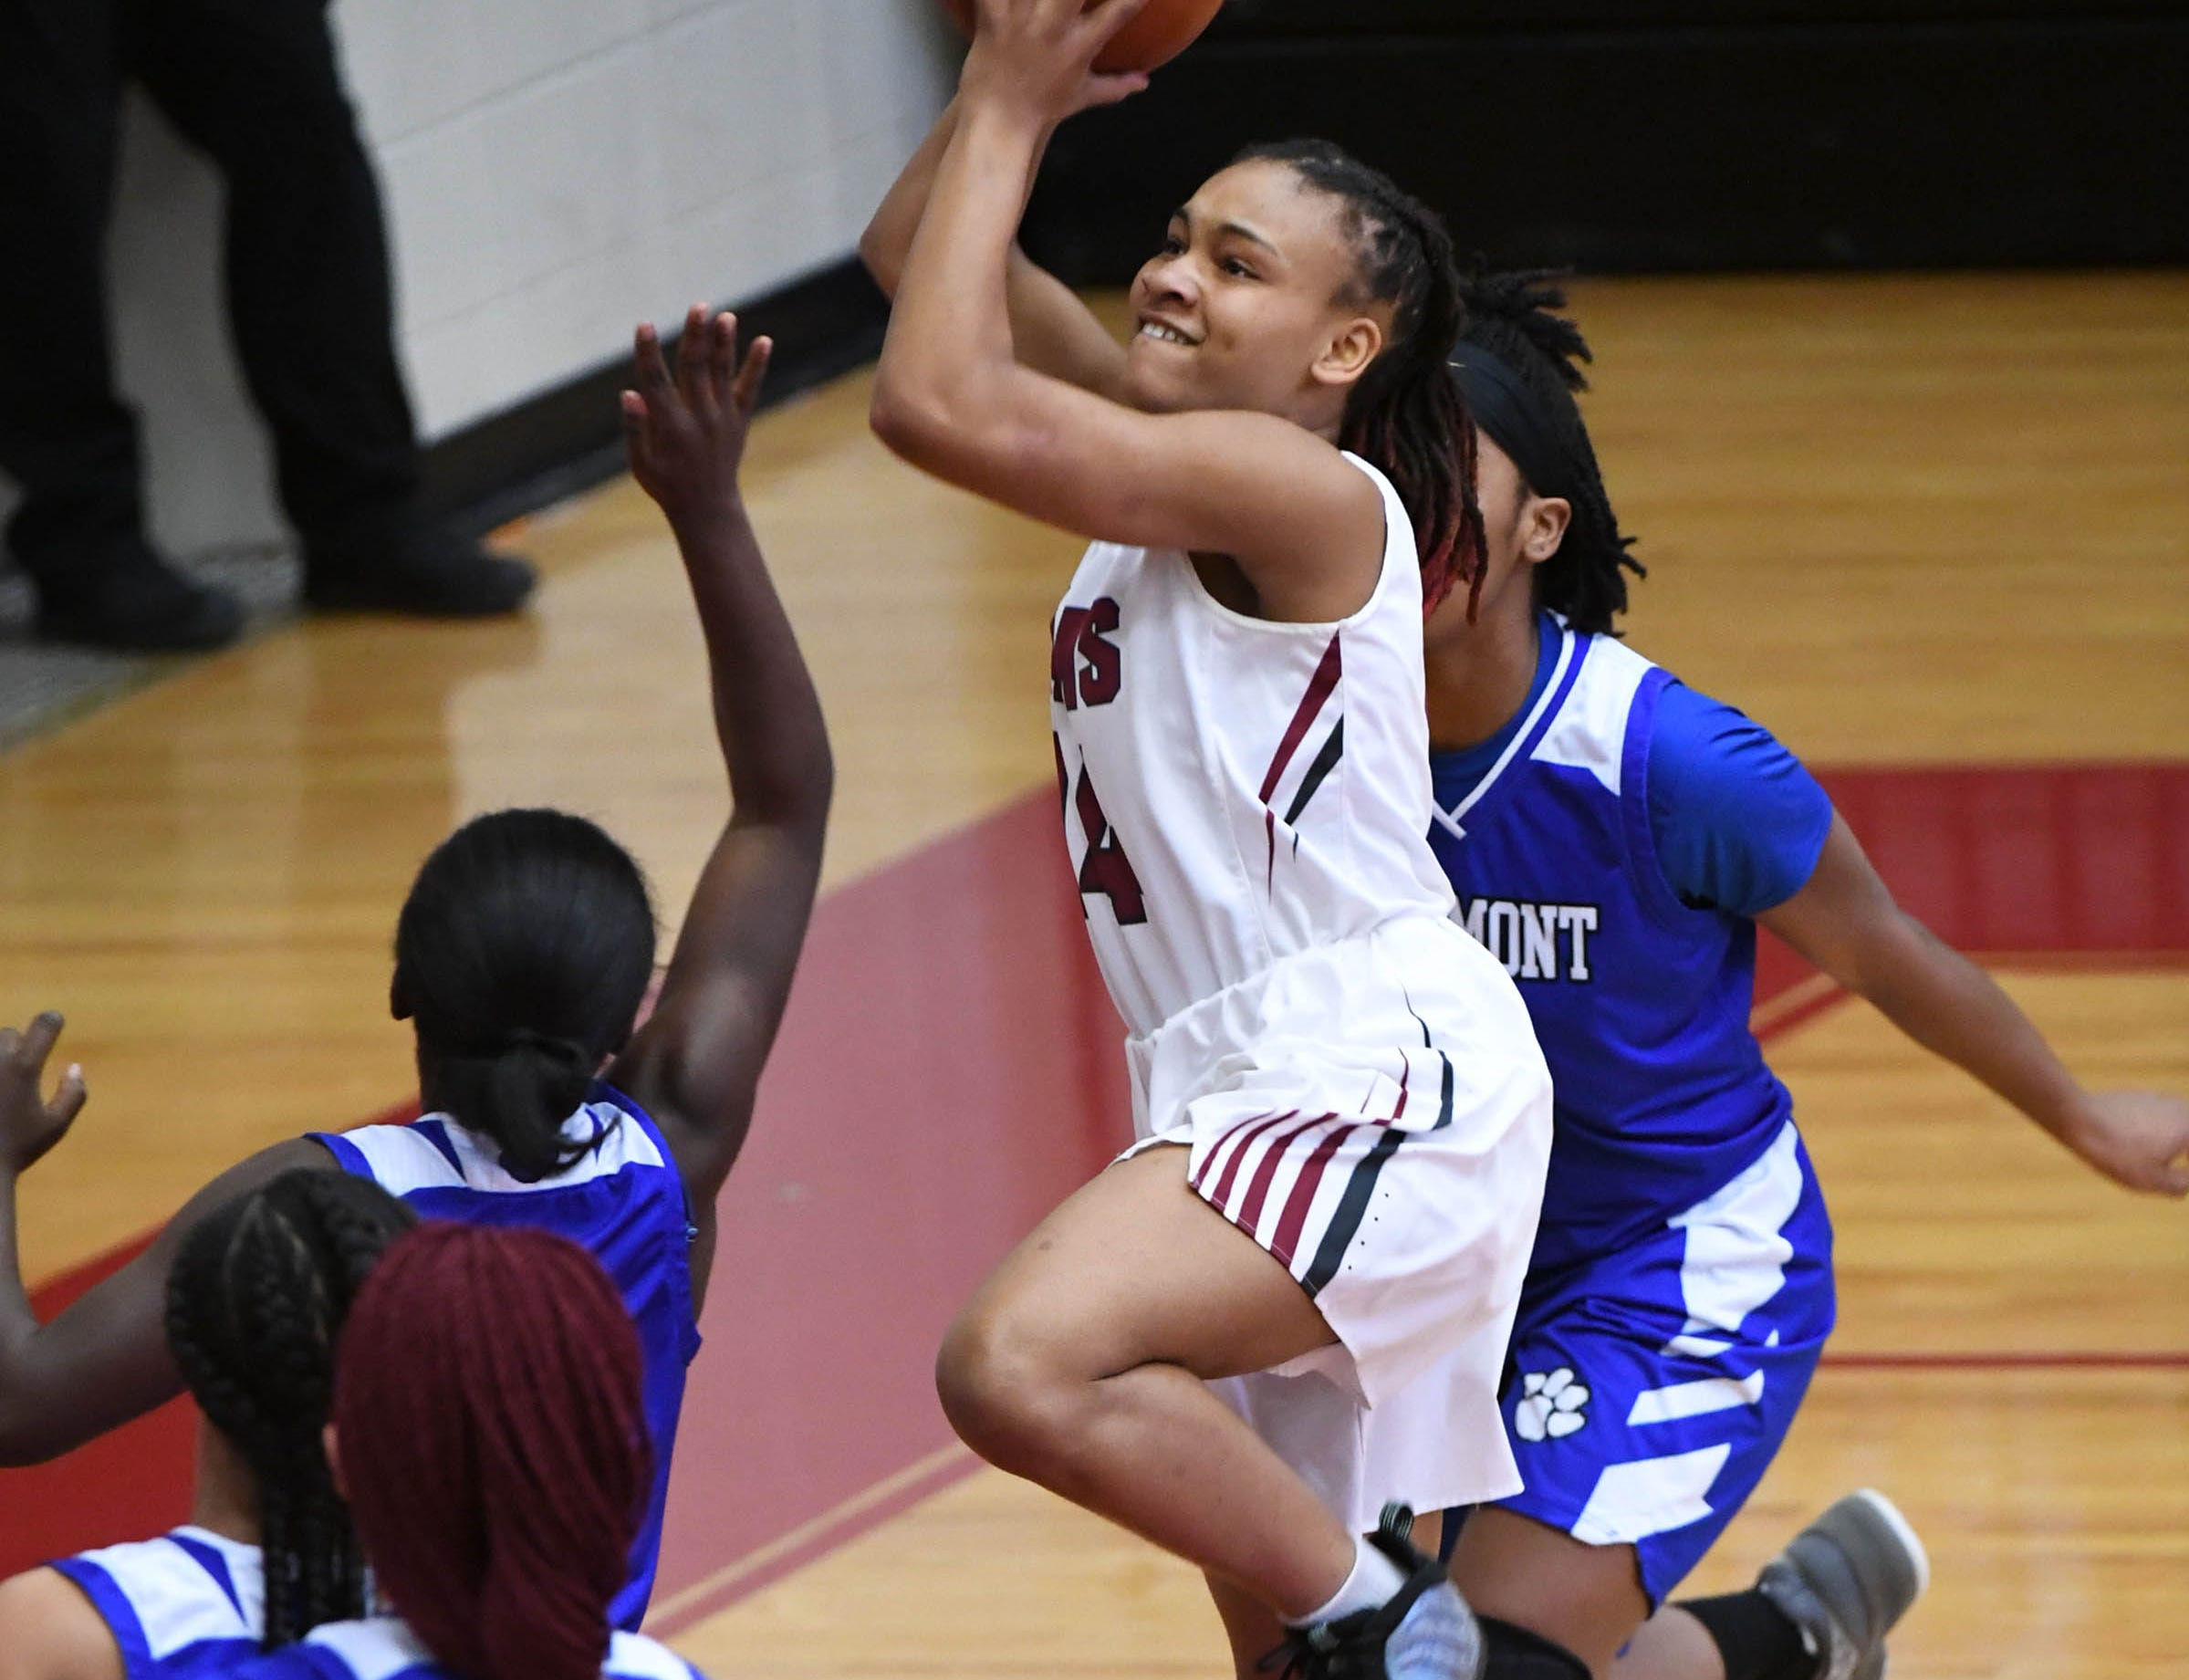 Westside junior Tatyana Lewis(14) shoots near Woodmont junior Sydney Wyatt(21) during the first quarter at Westside High School in Anderson on Tuesday.